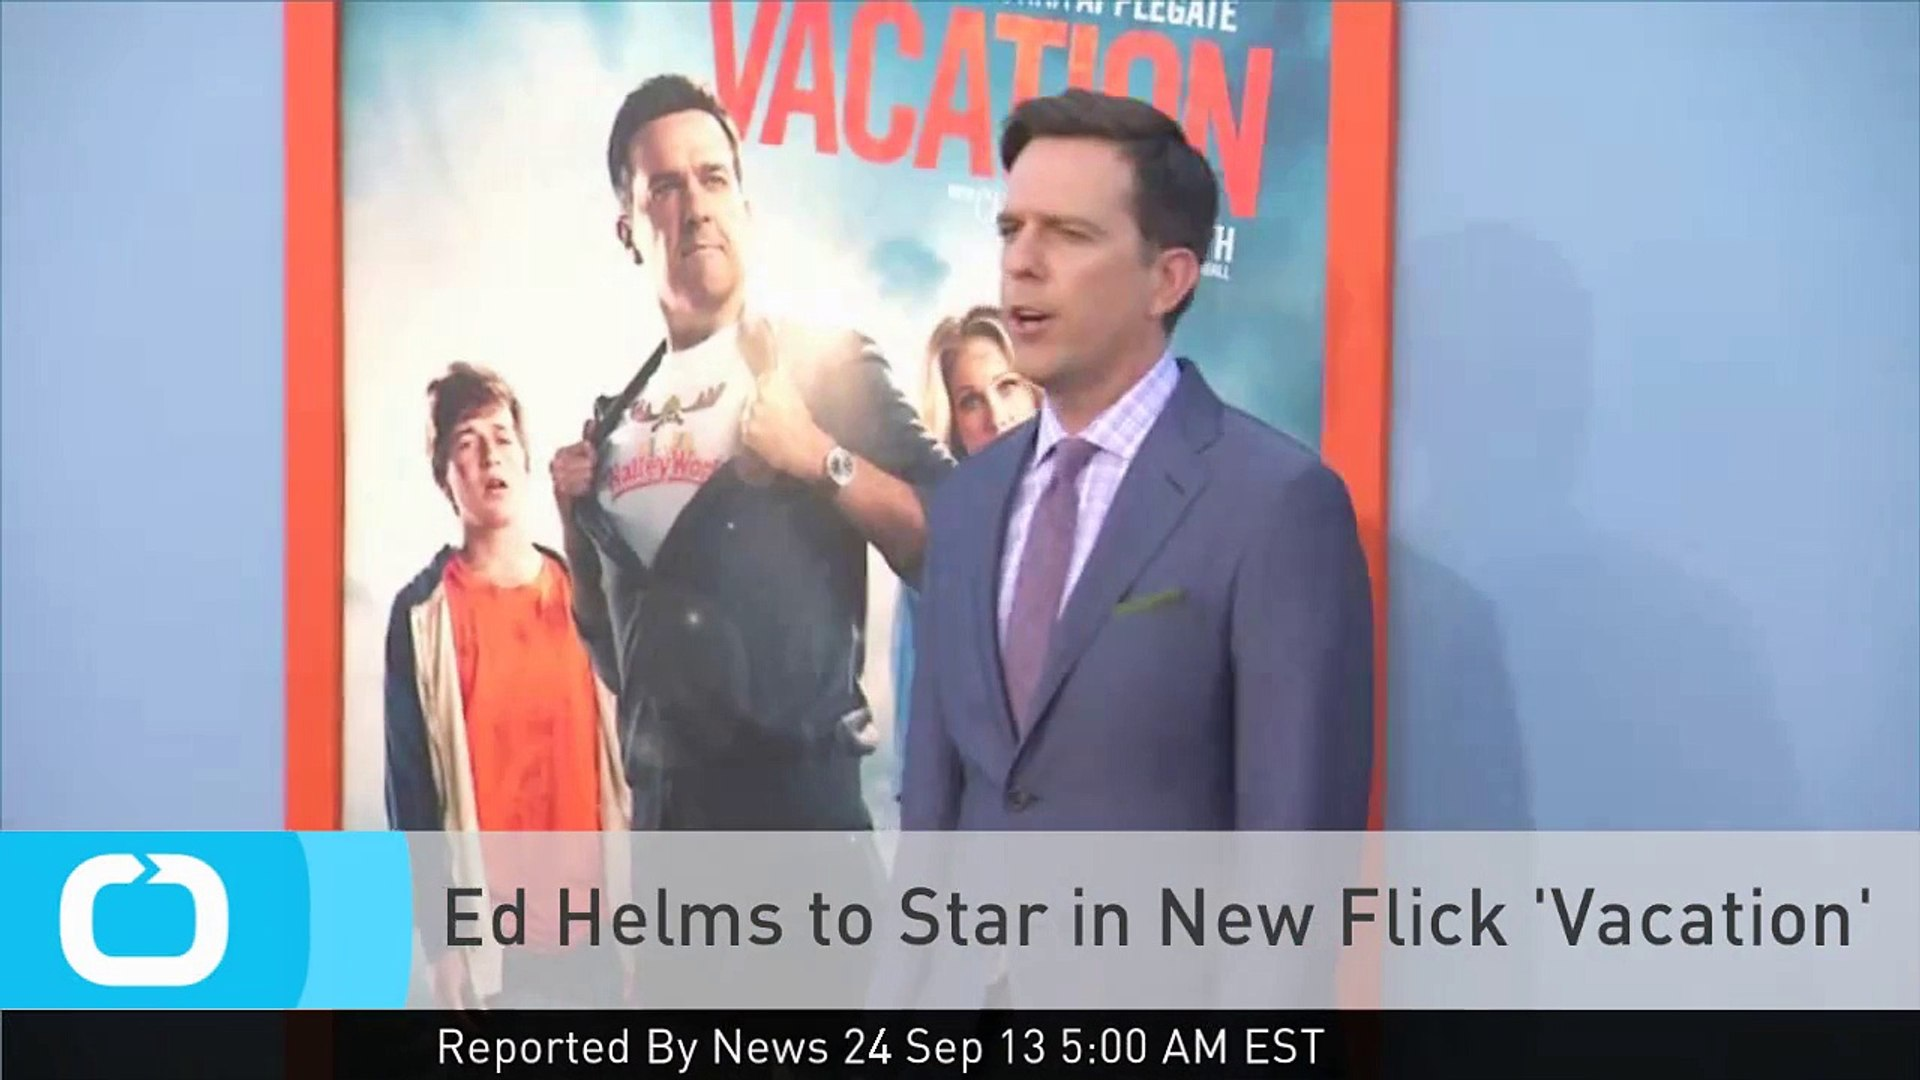 Ed Helms to Star in New Flick 'Vacation'